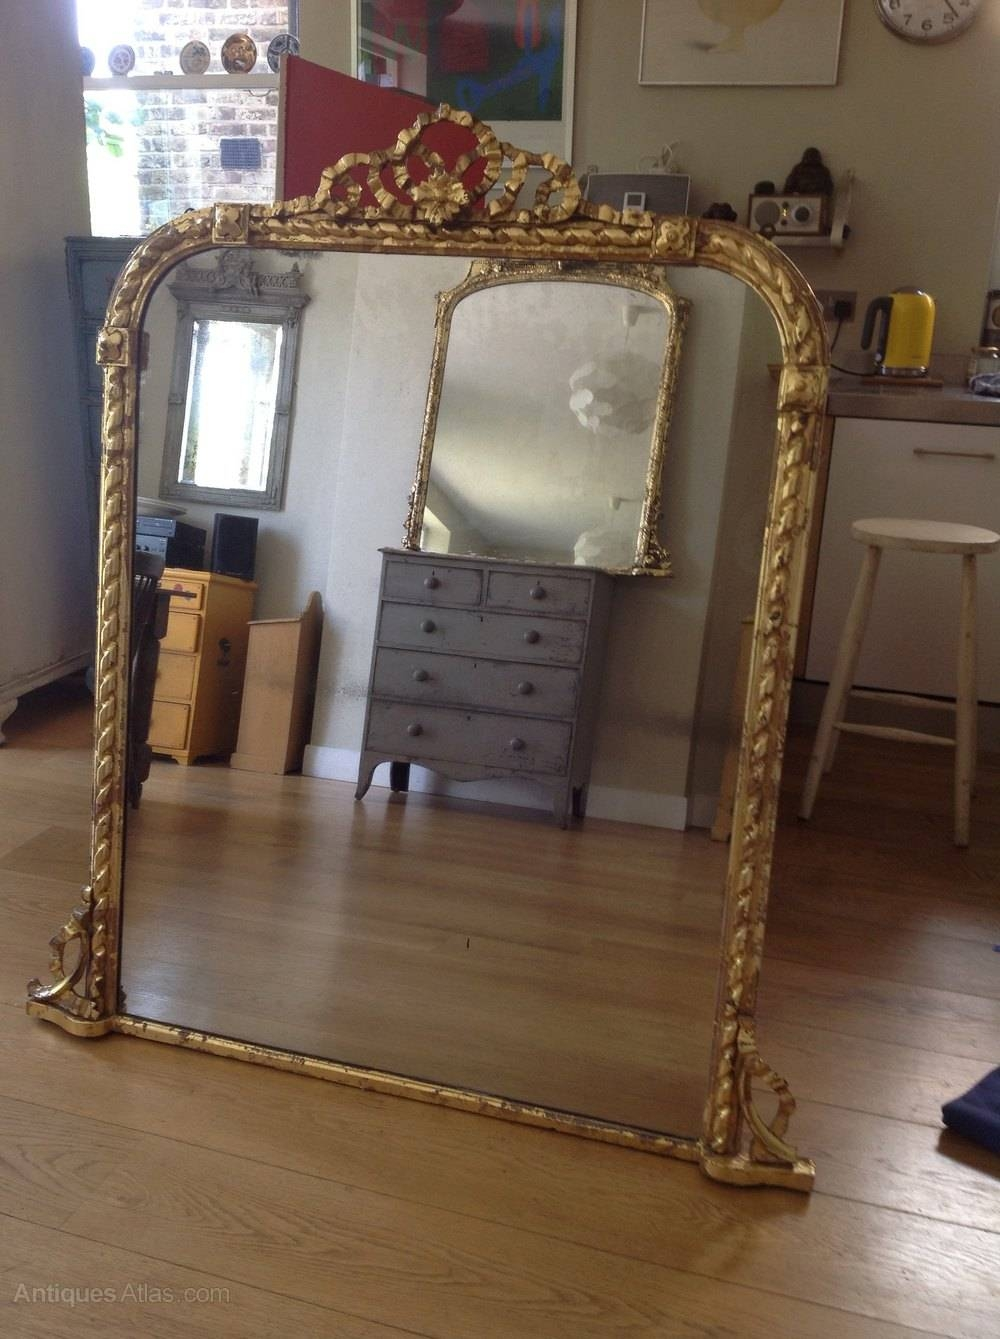 Antiques Atlas - Large Victorian Mirror intended for Antique Victorian Mirrors (Image 9 of 15)